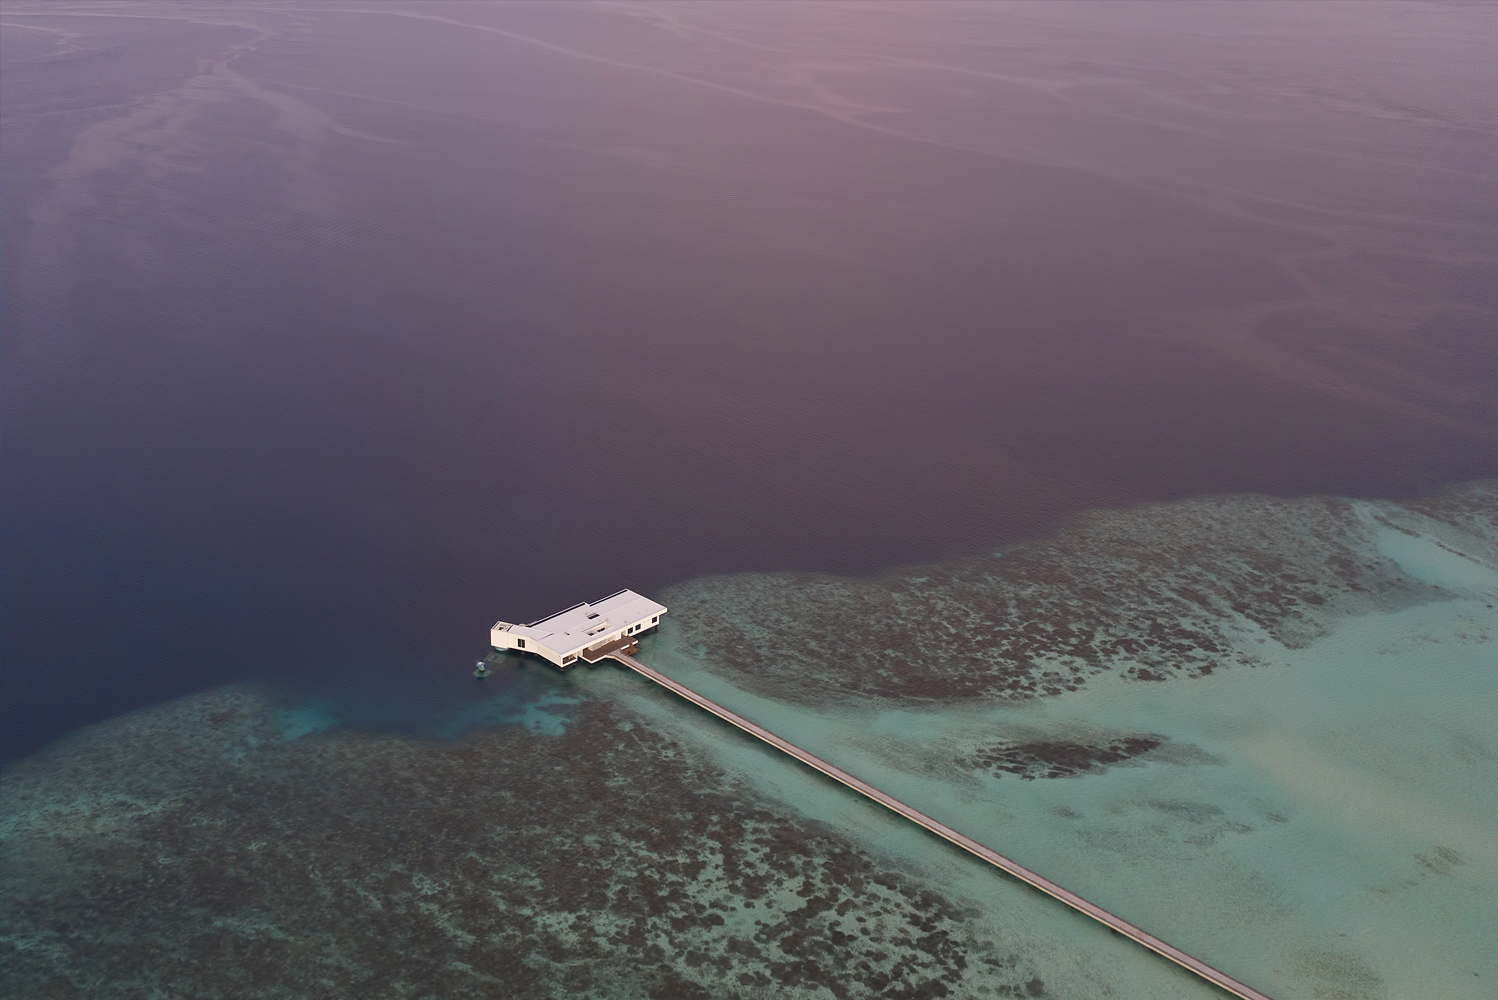 The Conrad Maldives Rangali Island resort opened the first-ever underwater hotel residence, THE MURAKA, in Maldives.